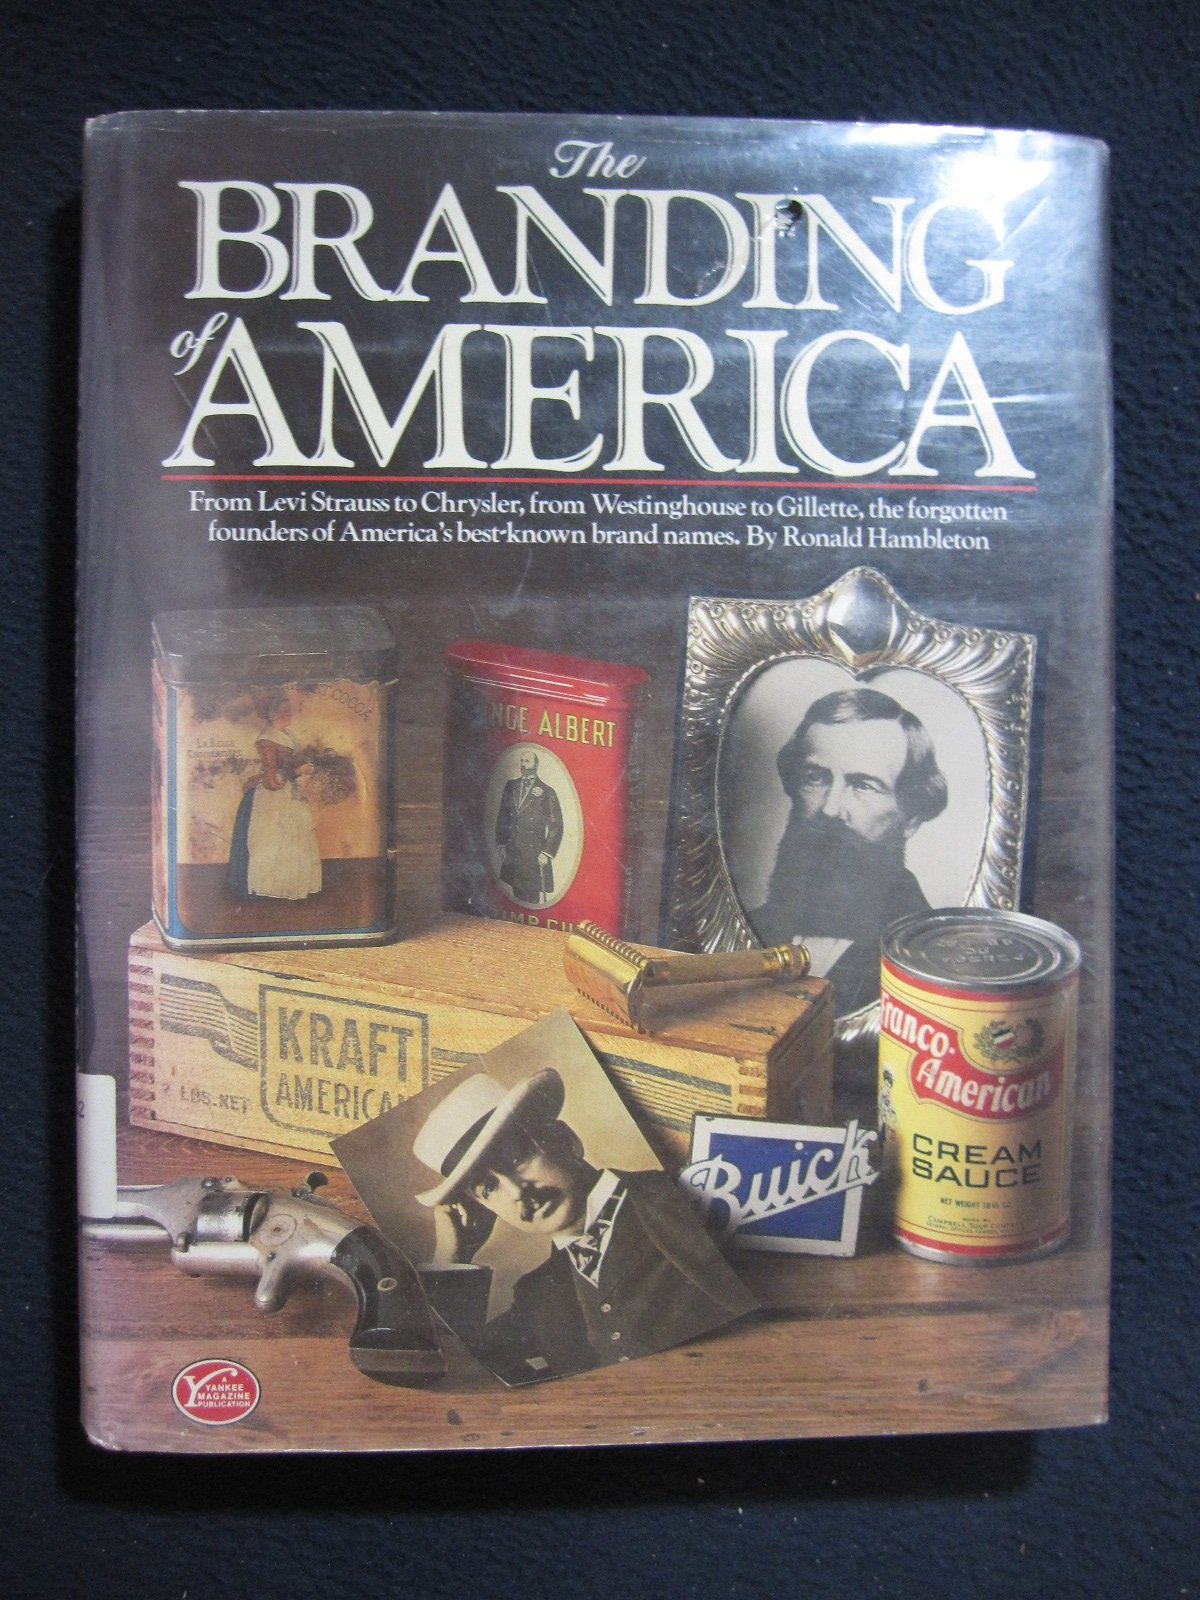 The Branding of America: From Levi Stauss to Chrysler, from Westinghouse to Gillette, the Forgotten Founders of America's Best-known Brand Names